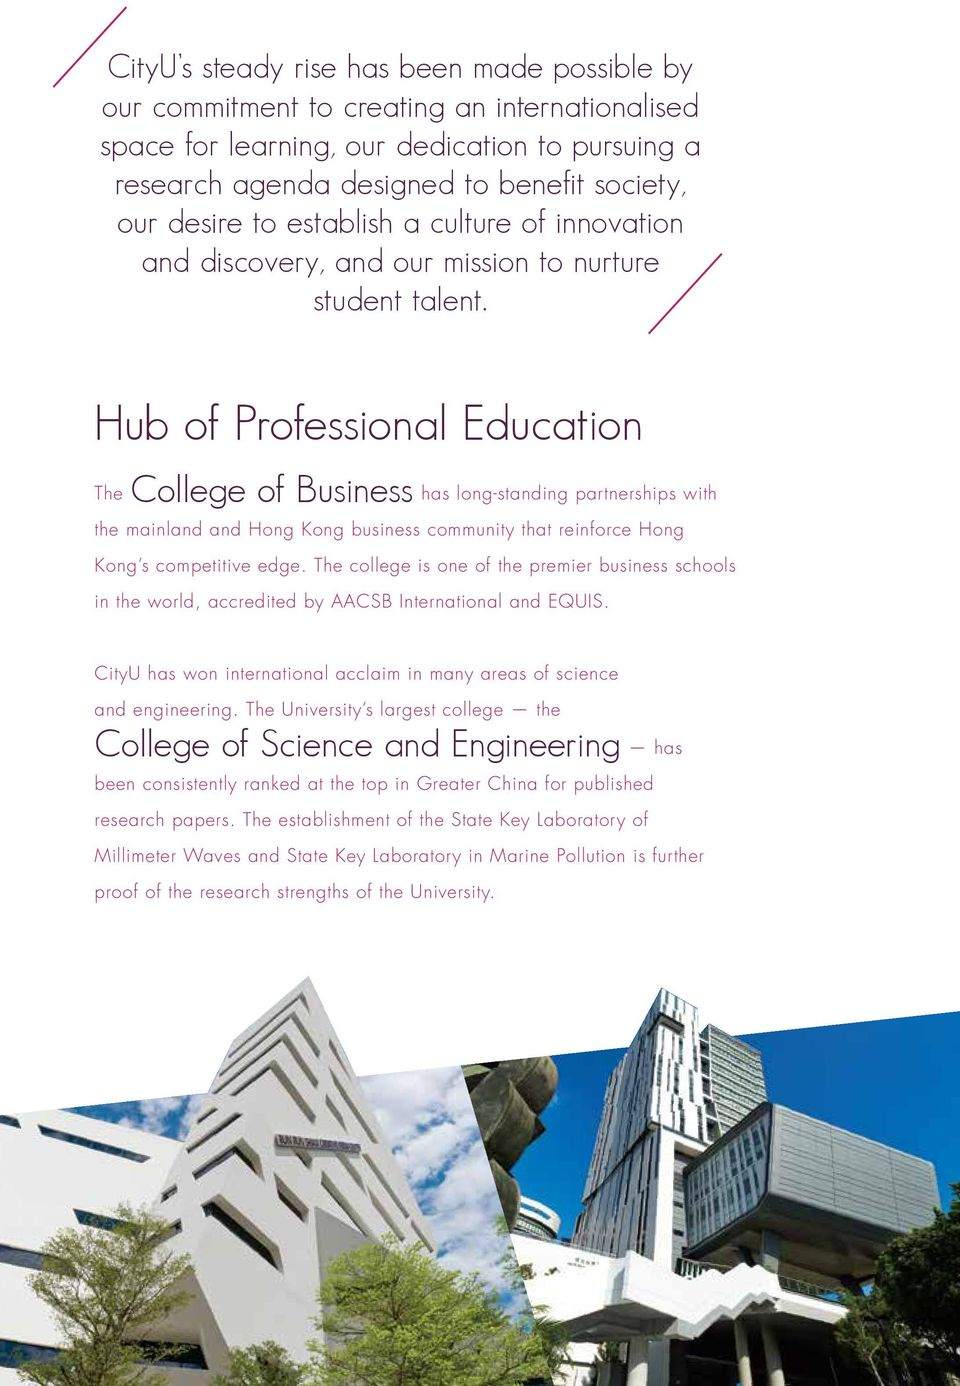 Hub of Professional Education The College of Business has long-standing partnerships with the mainland and Hong Kong business community that reinforce Hong Kong s competitive edge.